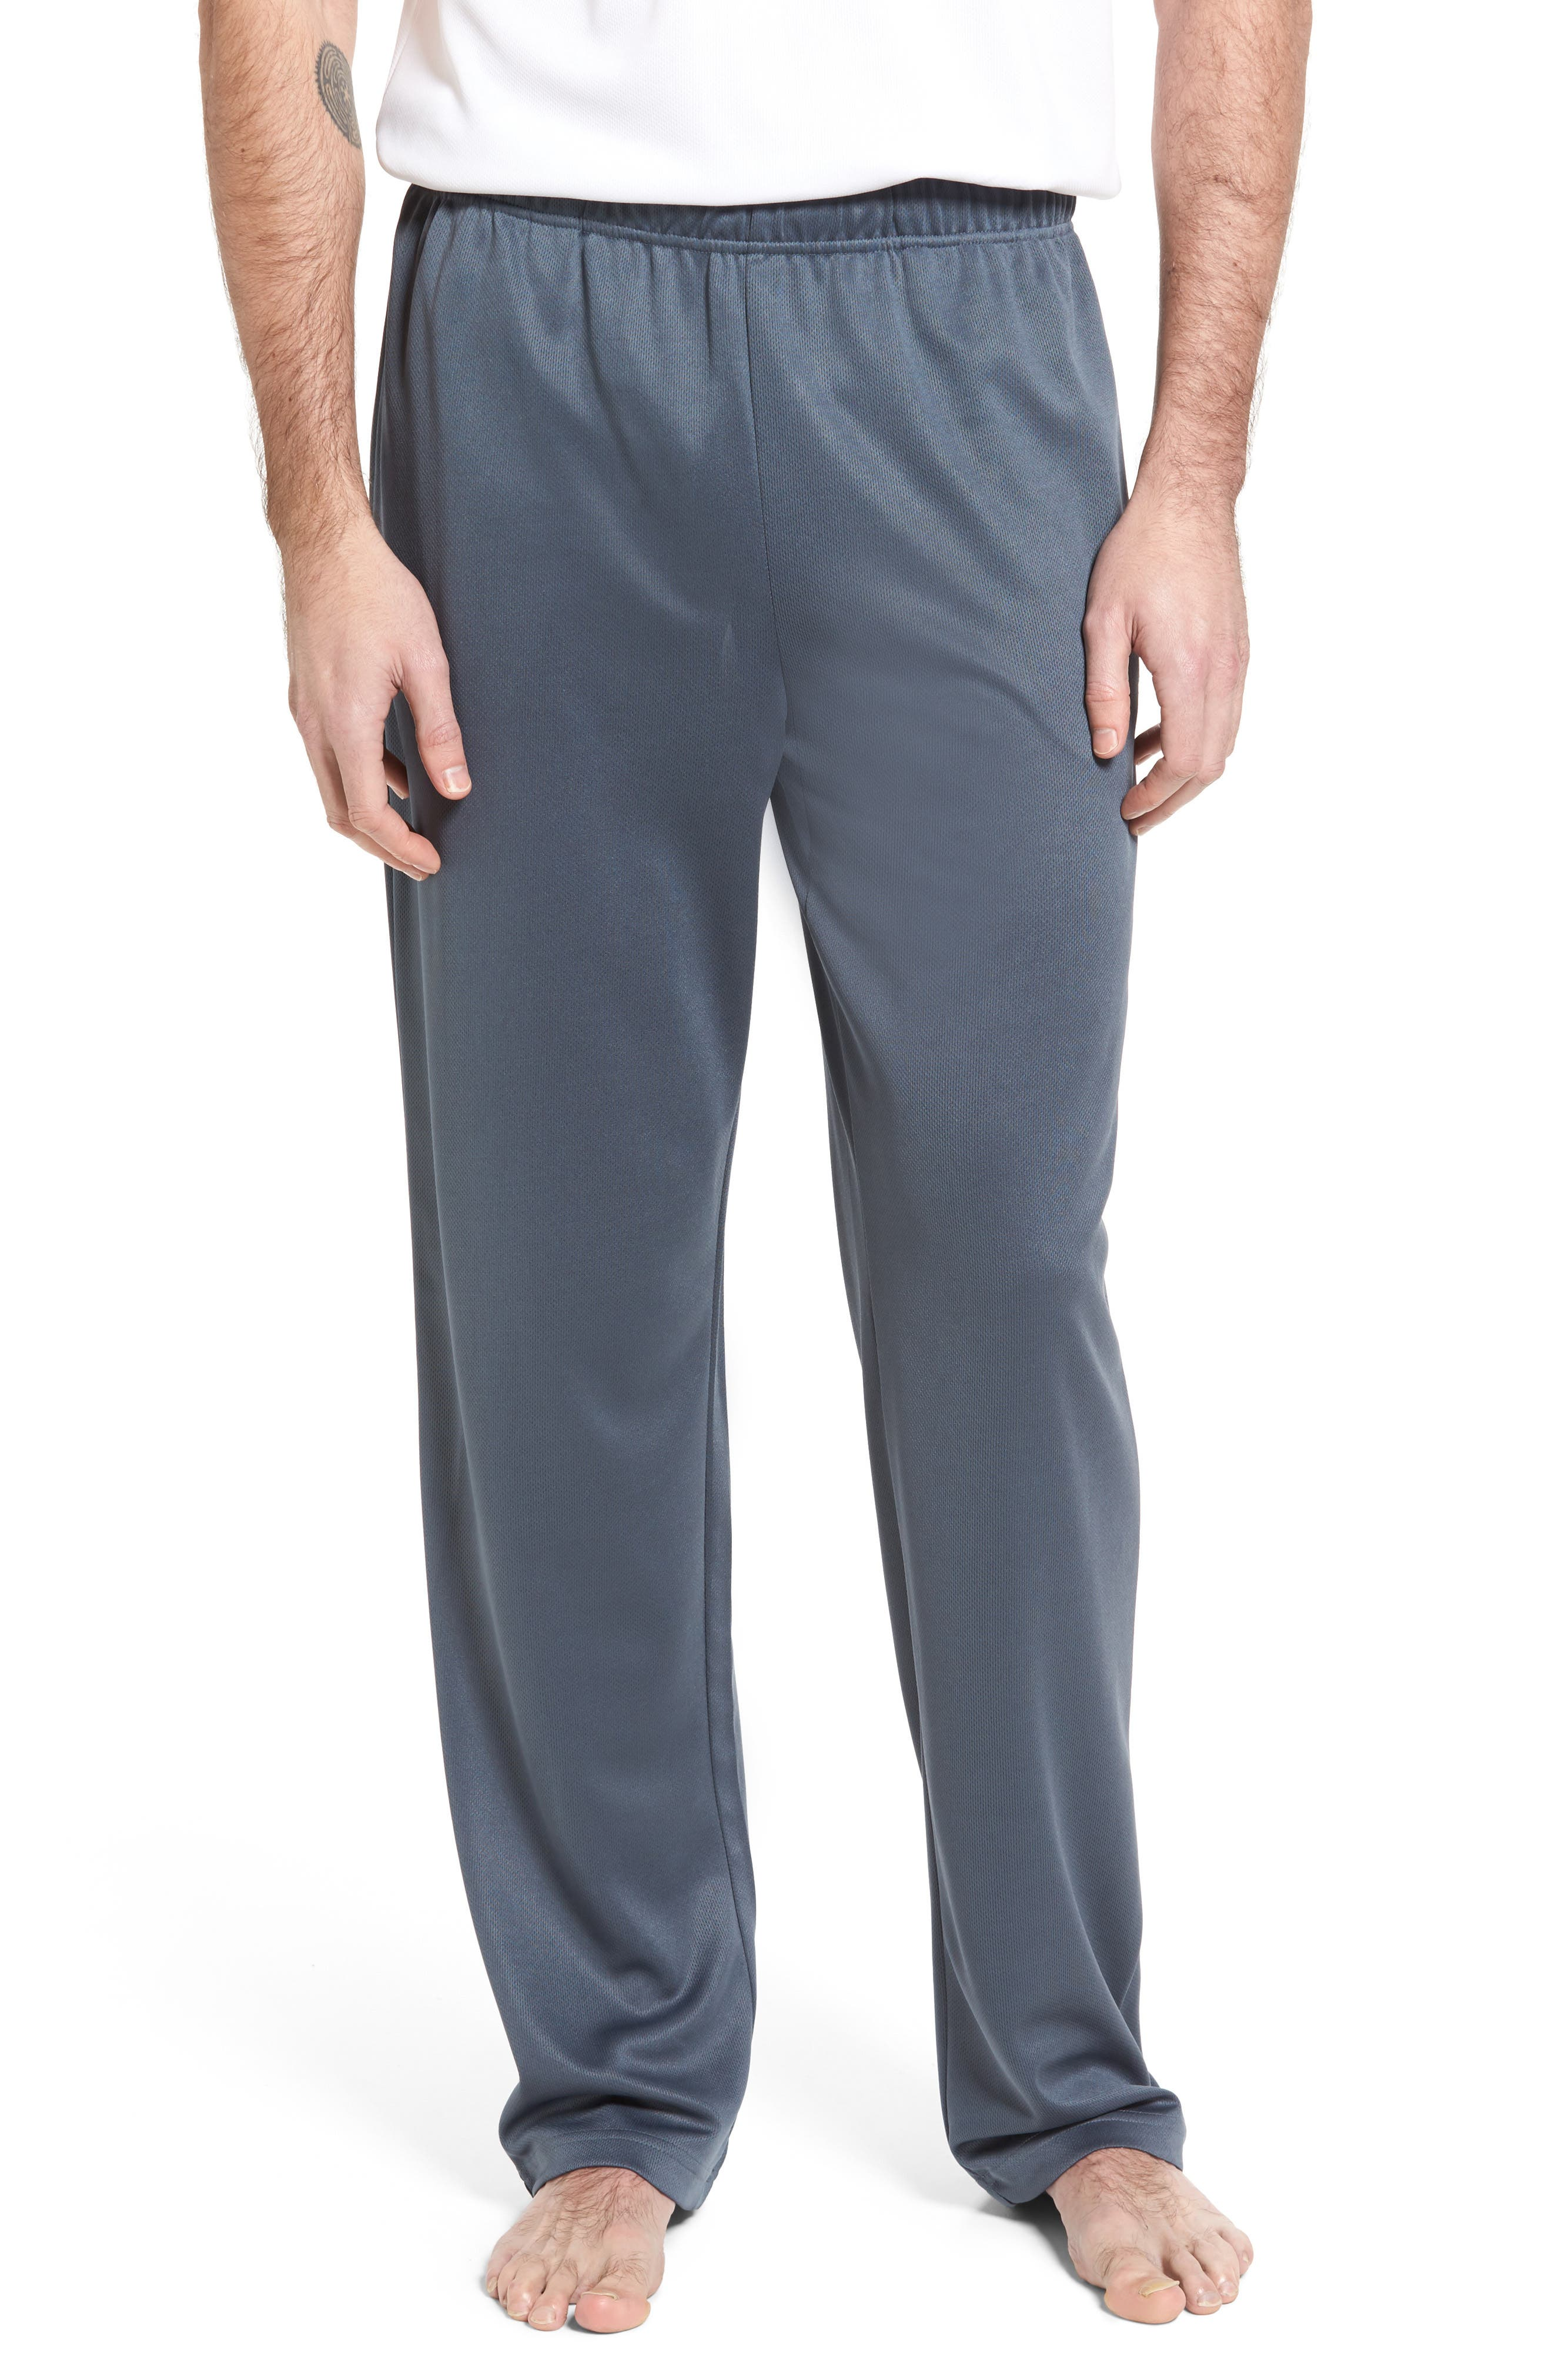 WORK OUT LOUNGE PANTS